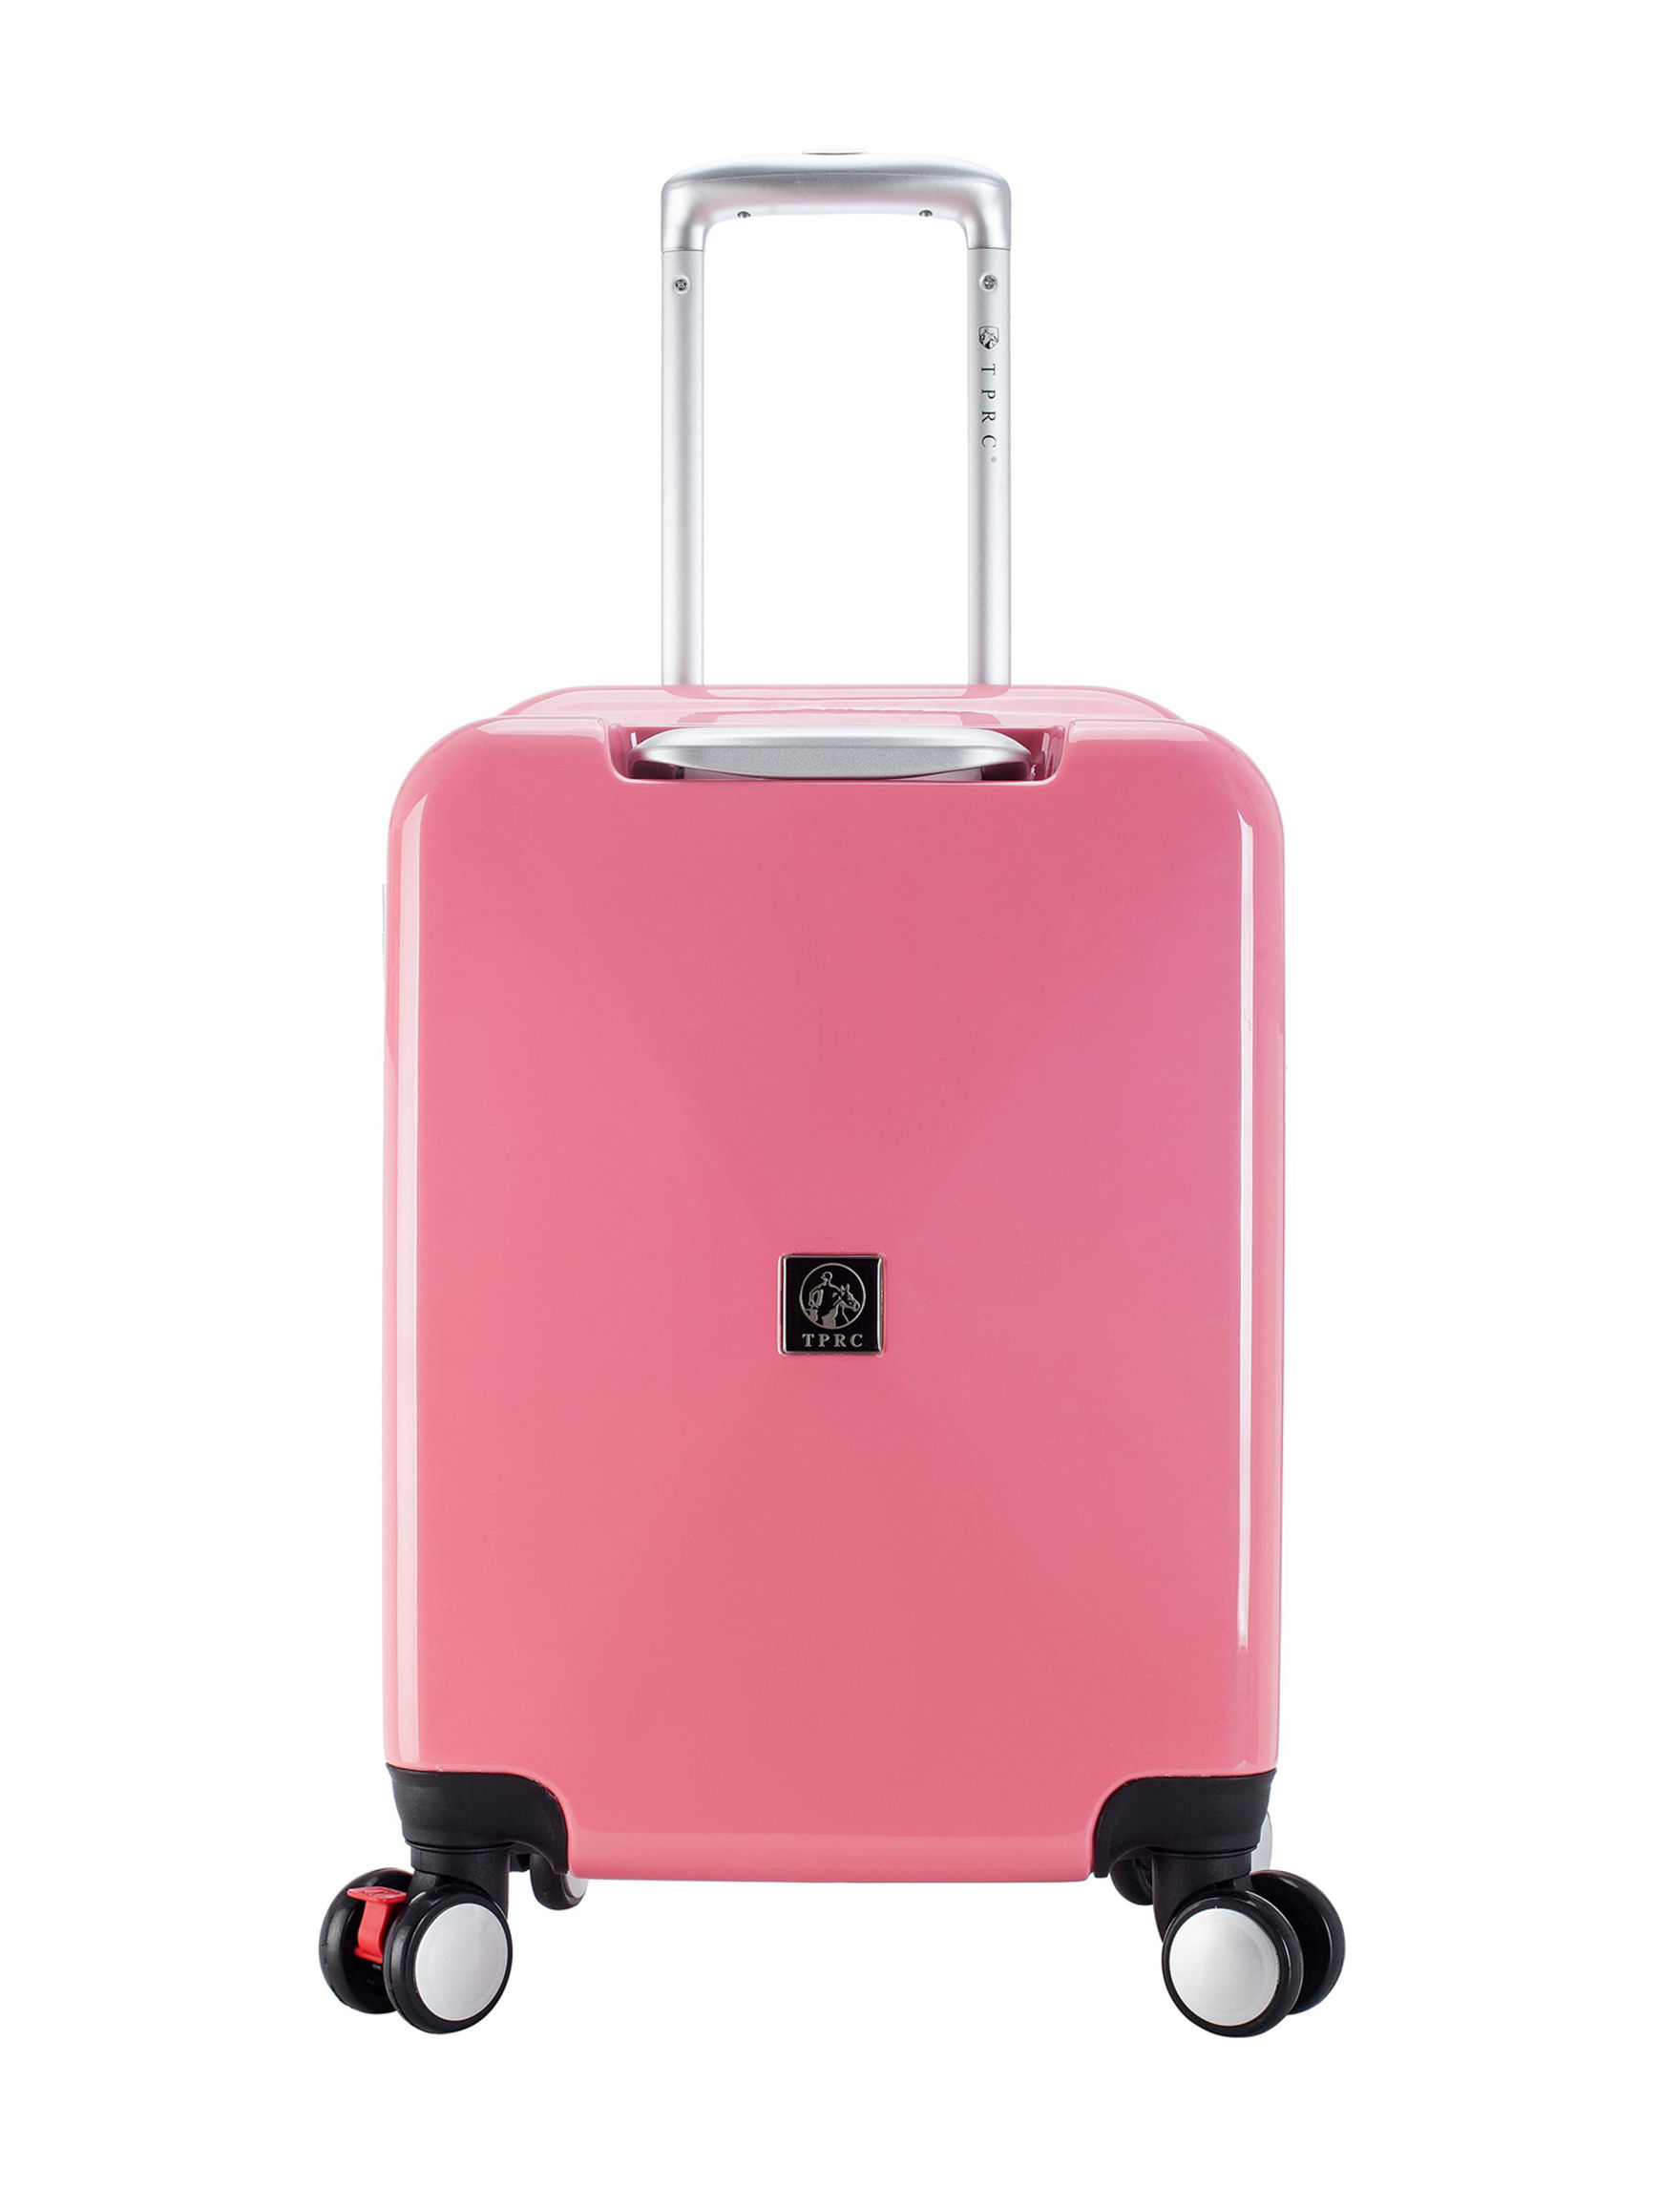 Seat-On Pink Upright Spinners